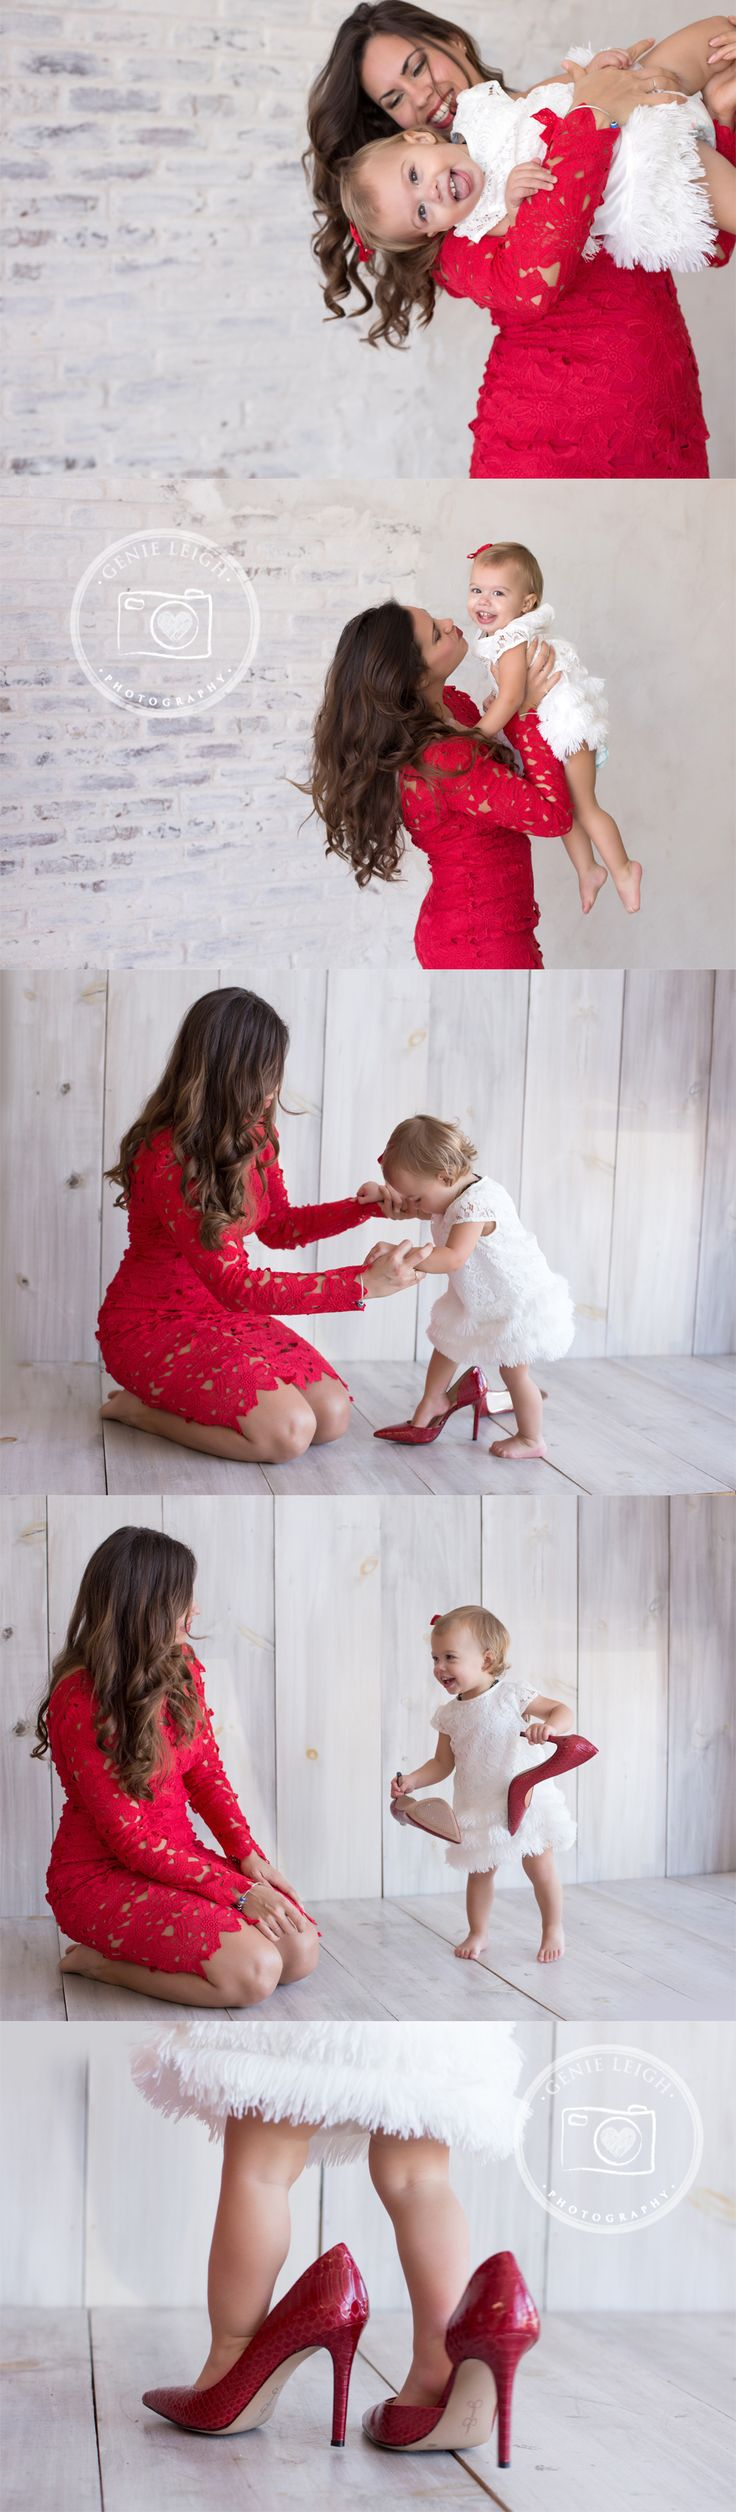 The 373 best Photography: Christmas images on Pinterest | Christmas ...